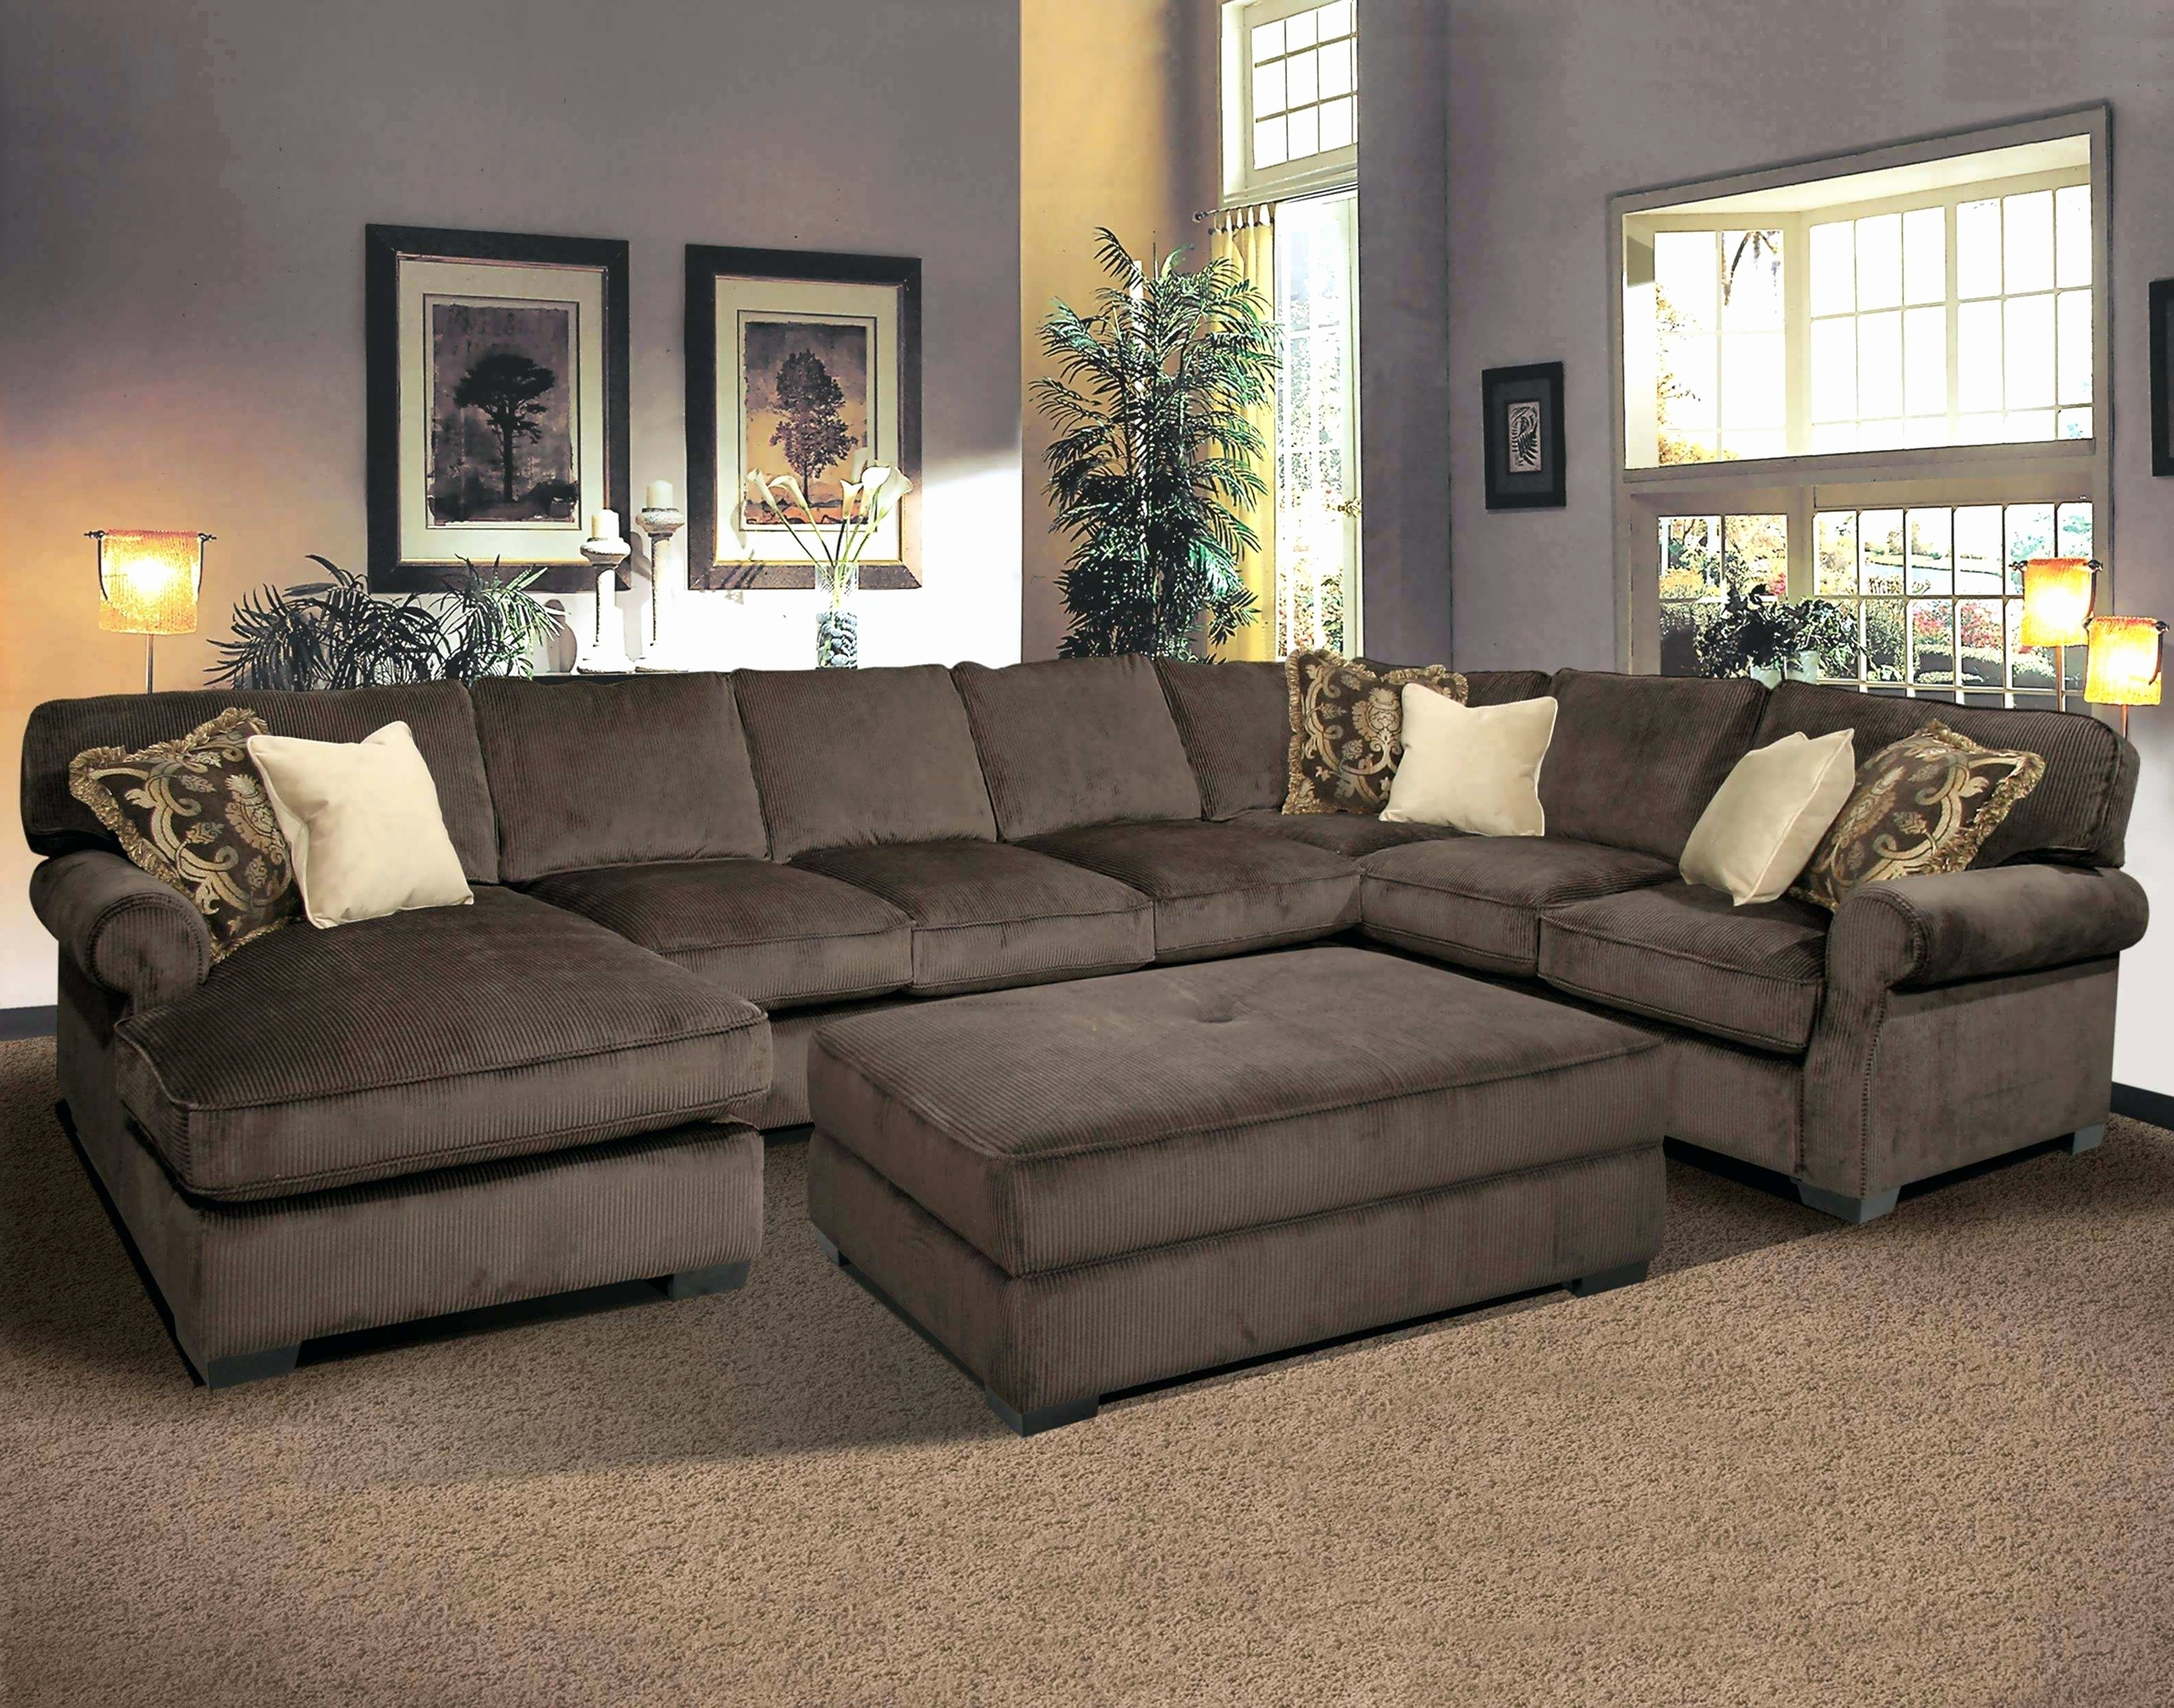 Most Popular Gta Sectional Sofas Regarding Genuine Leather Sofa Sets Kijiji Gta (View 10 of 15)